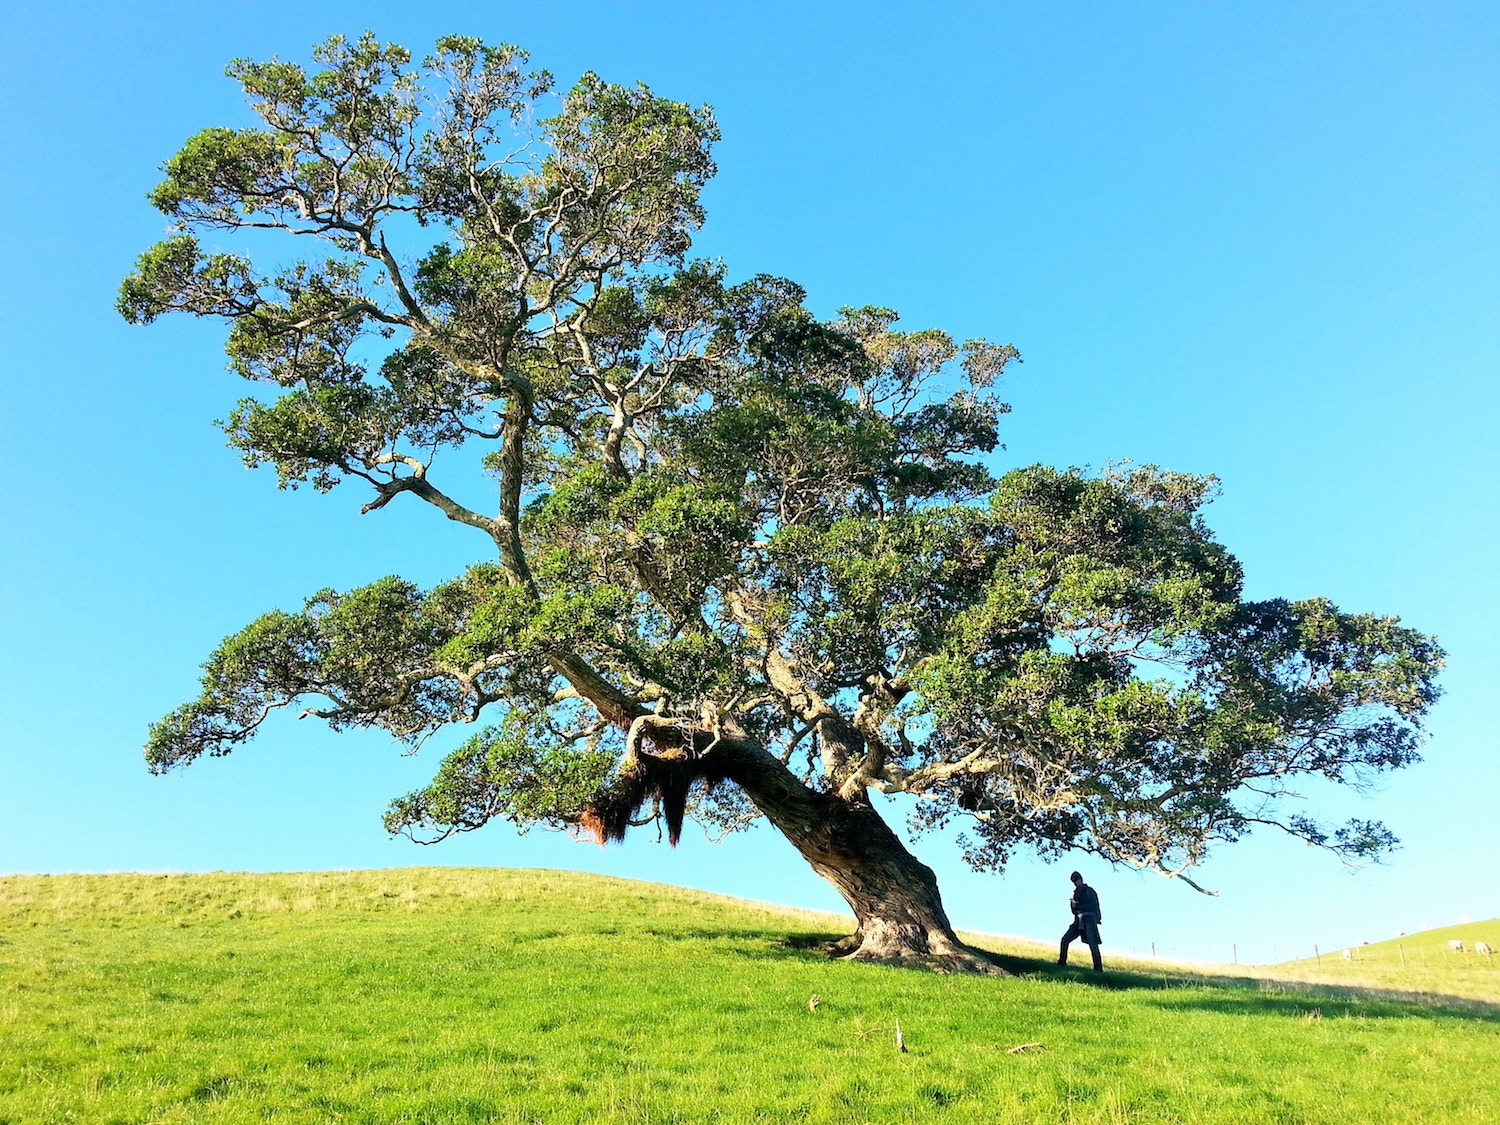 Spare a thought for trees this Valentine's Day, urges writing project